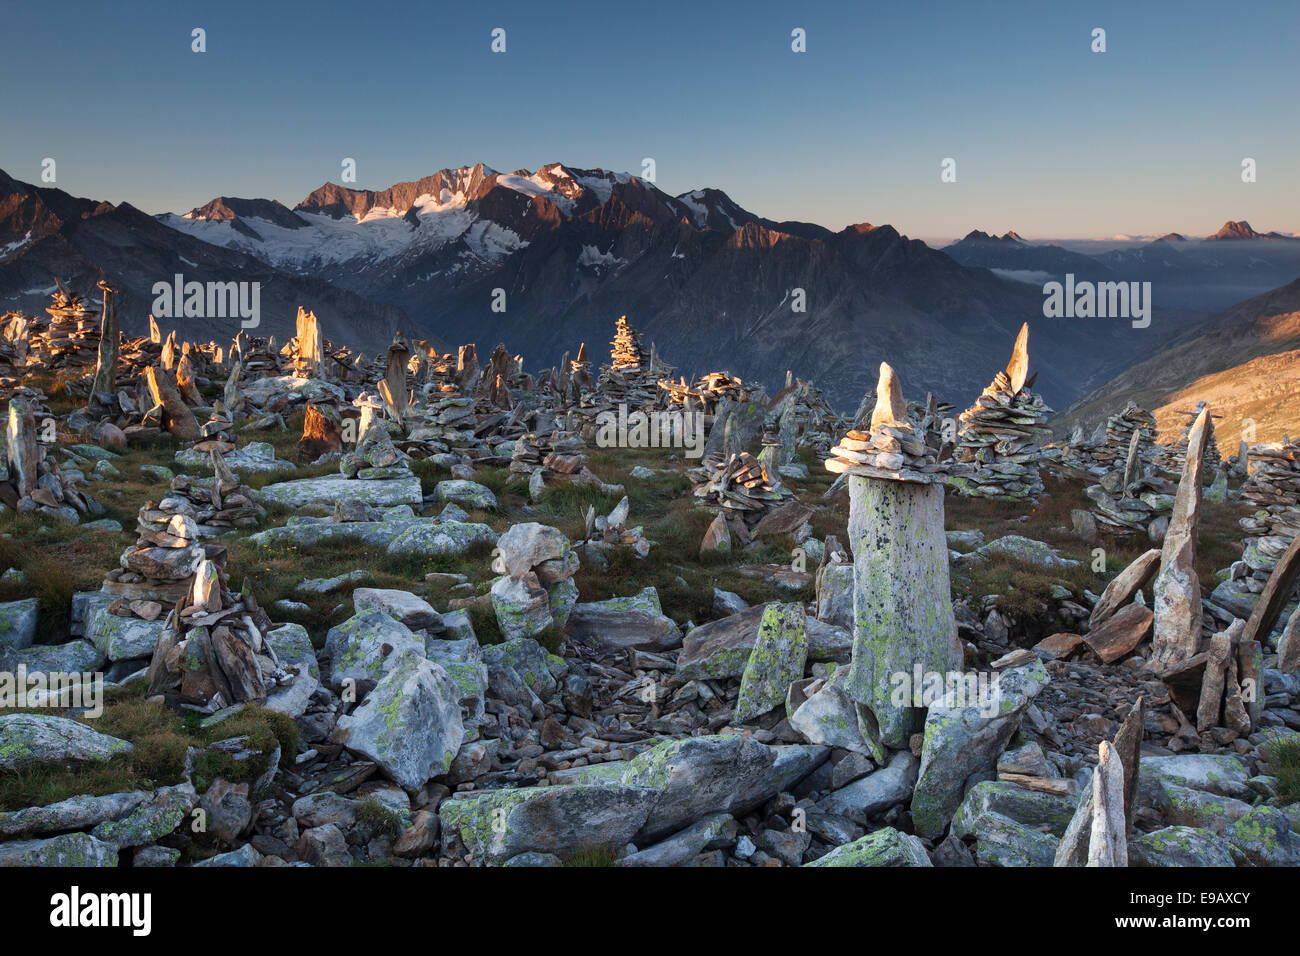 Cairns on the Petersköpfl, Ginzling, Tyrol, Austria Stock Photo